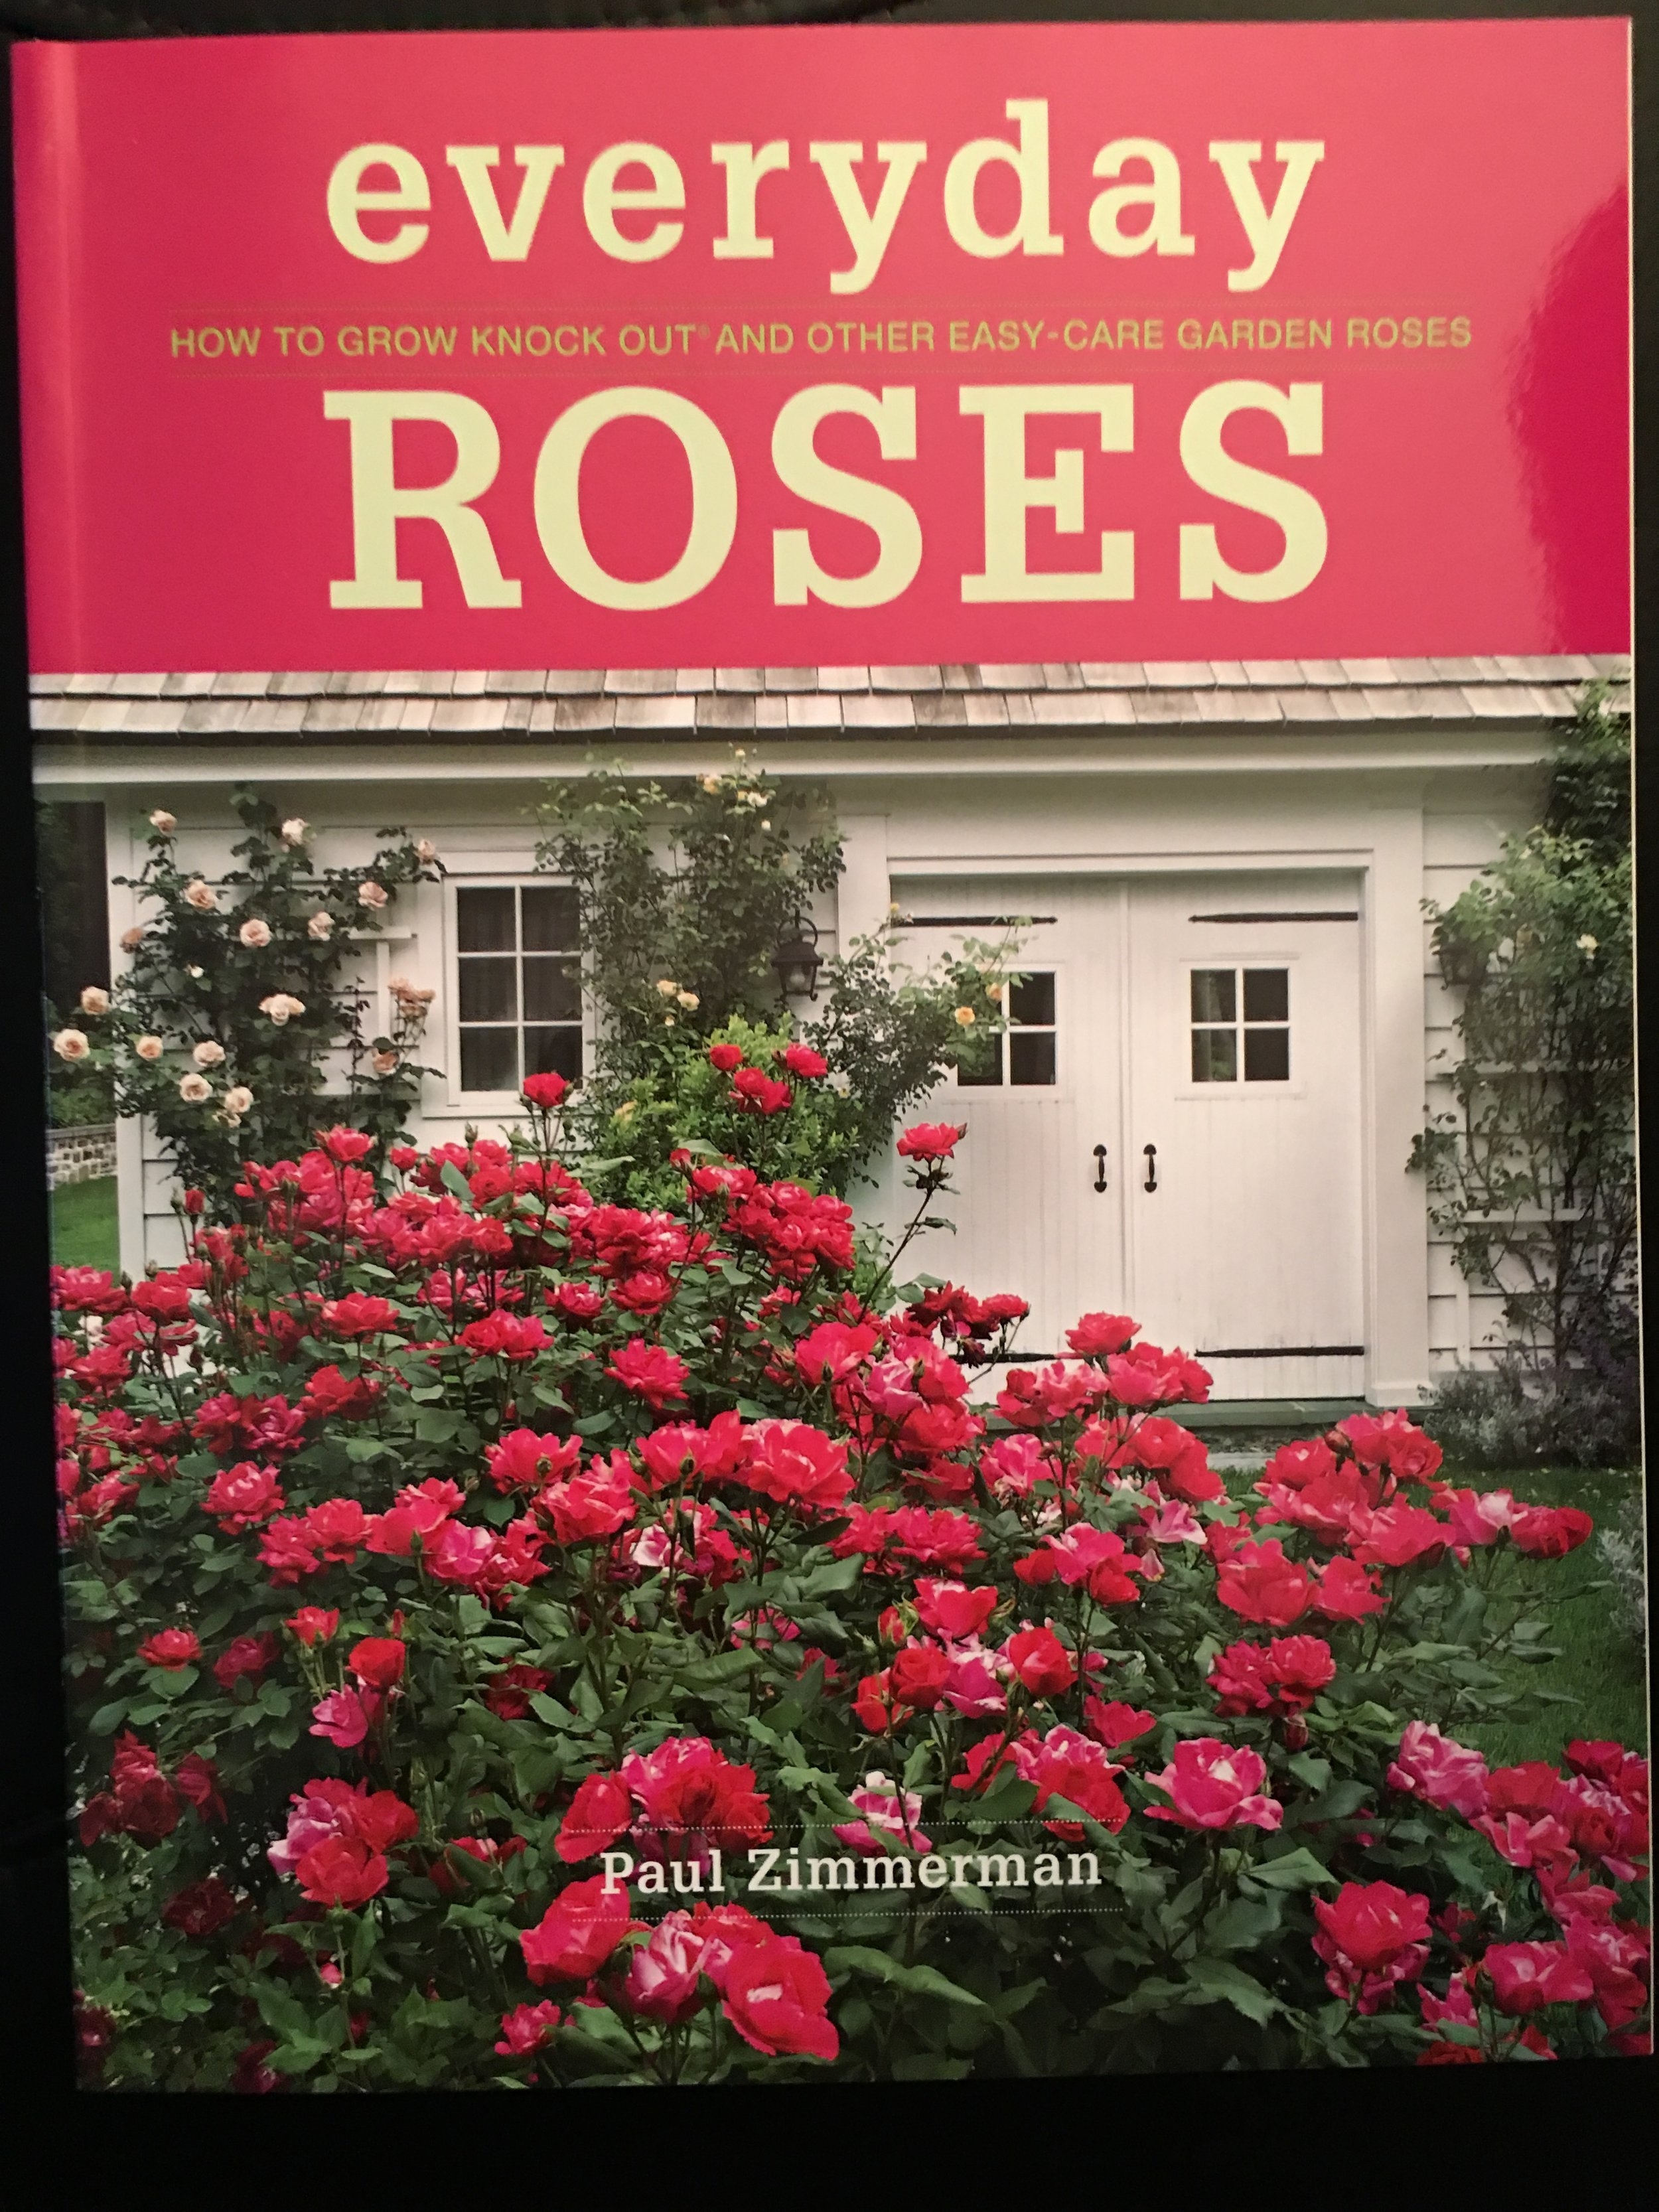 Everyday Roses - How to grow knock out and other easy-care garden roses